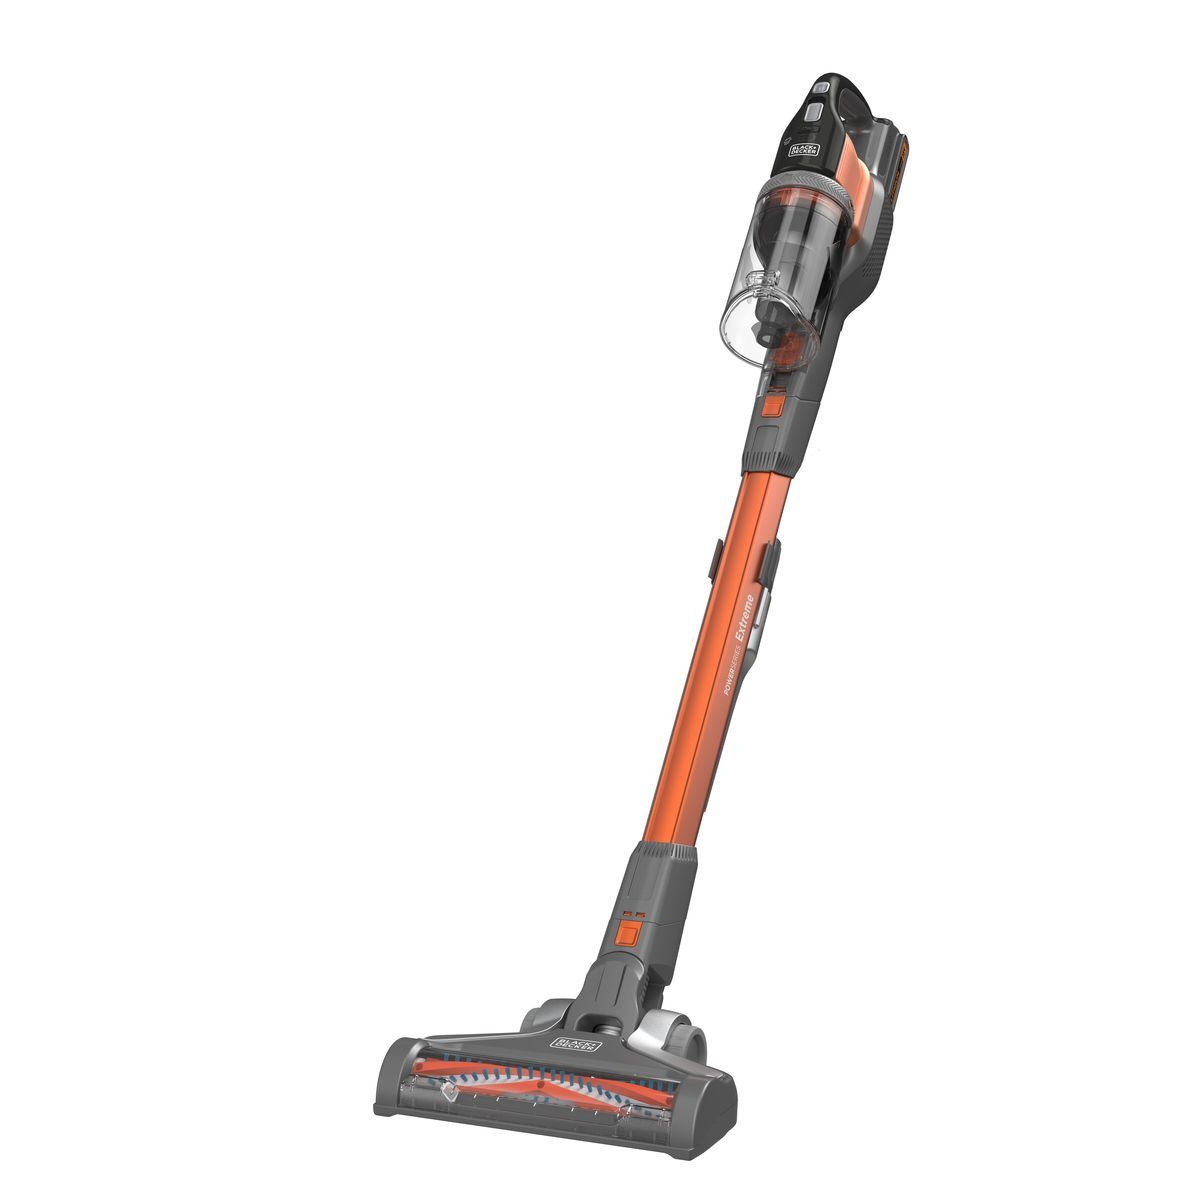 Aspirateur balai BHFEV182C-QW - Orange